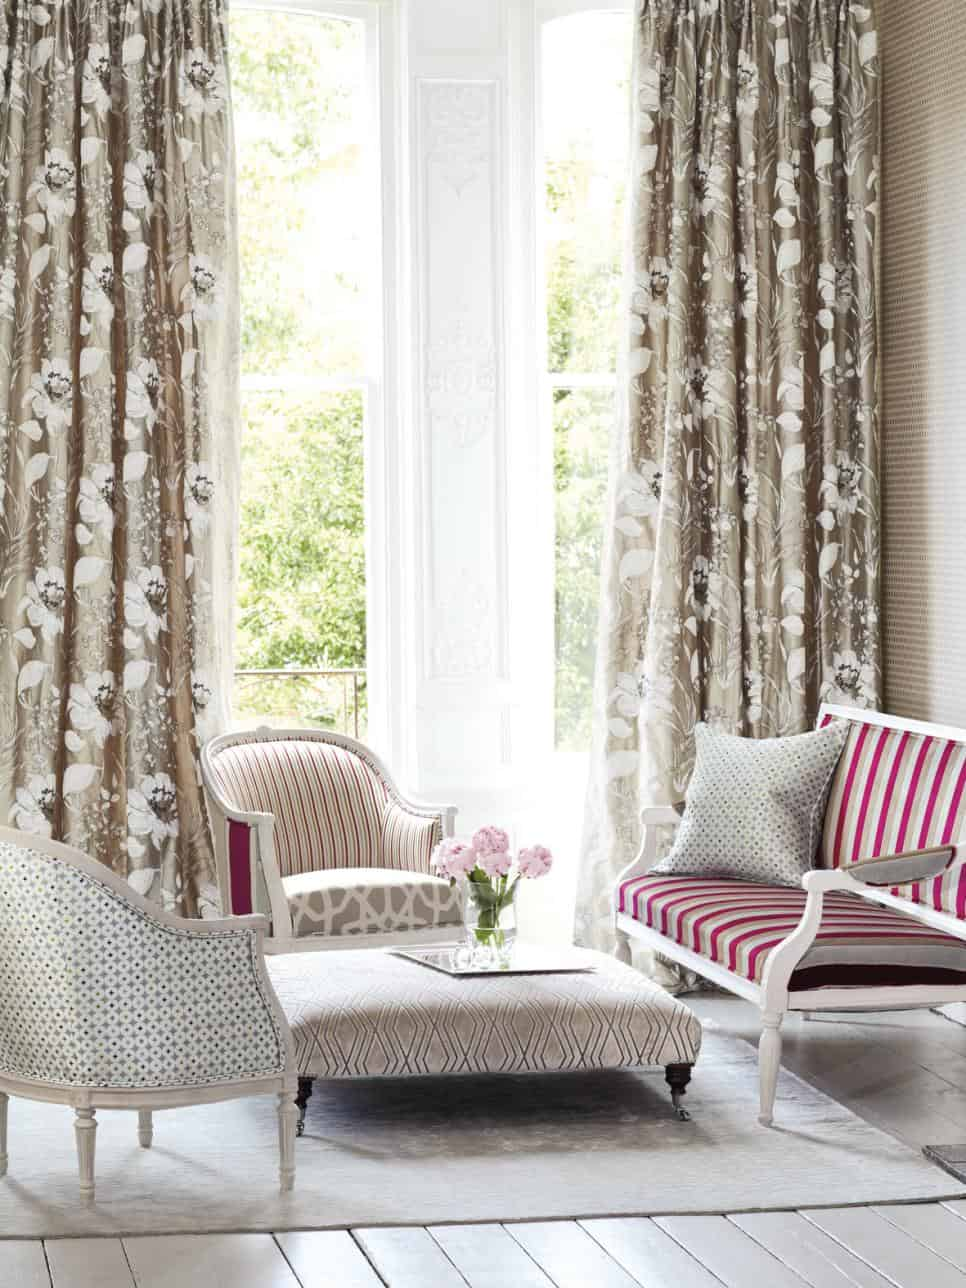 Neutral drapes are an excellent addition to any room especially if they have a pattern.